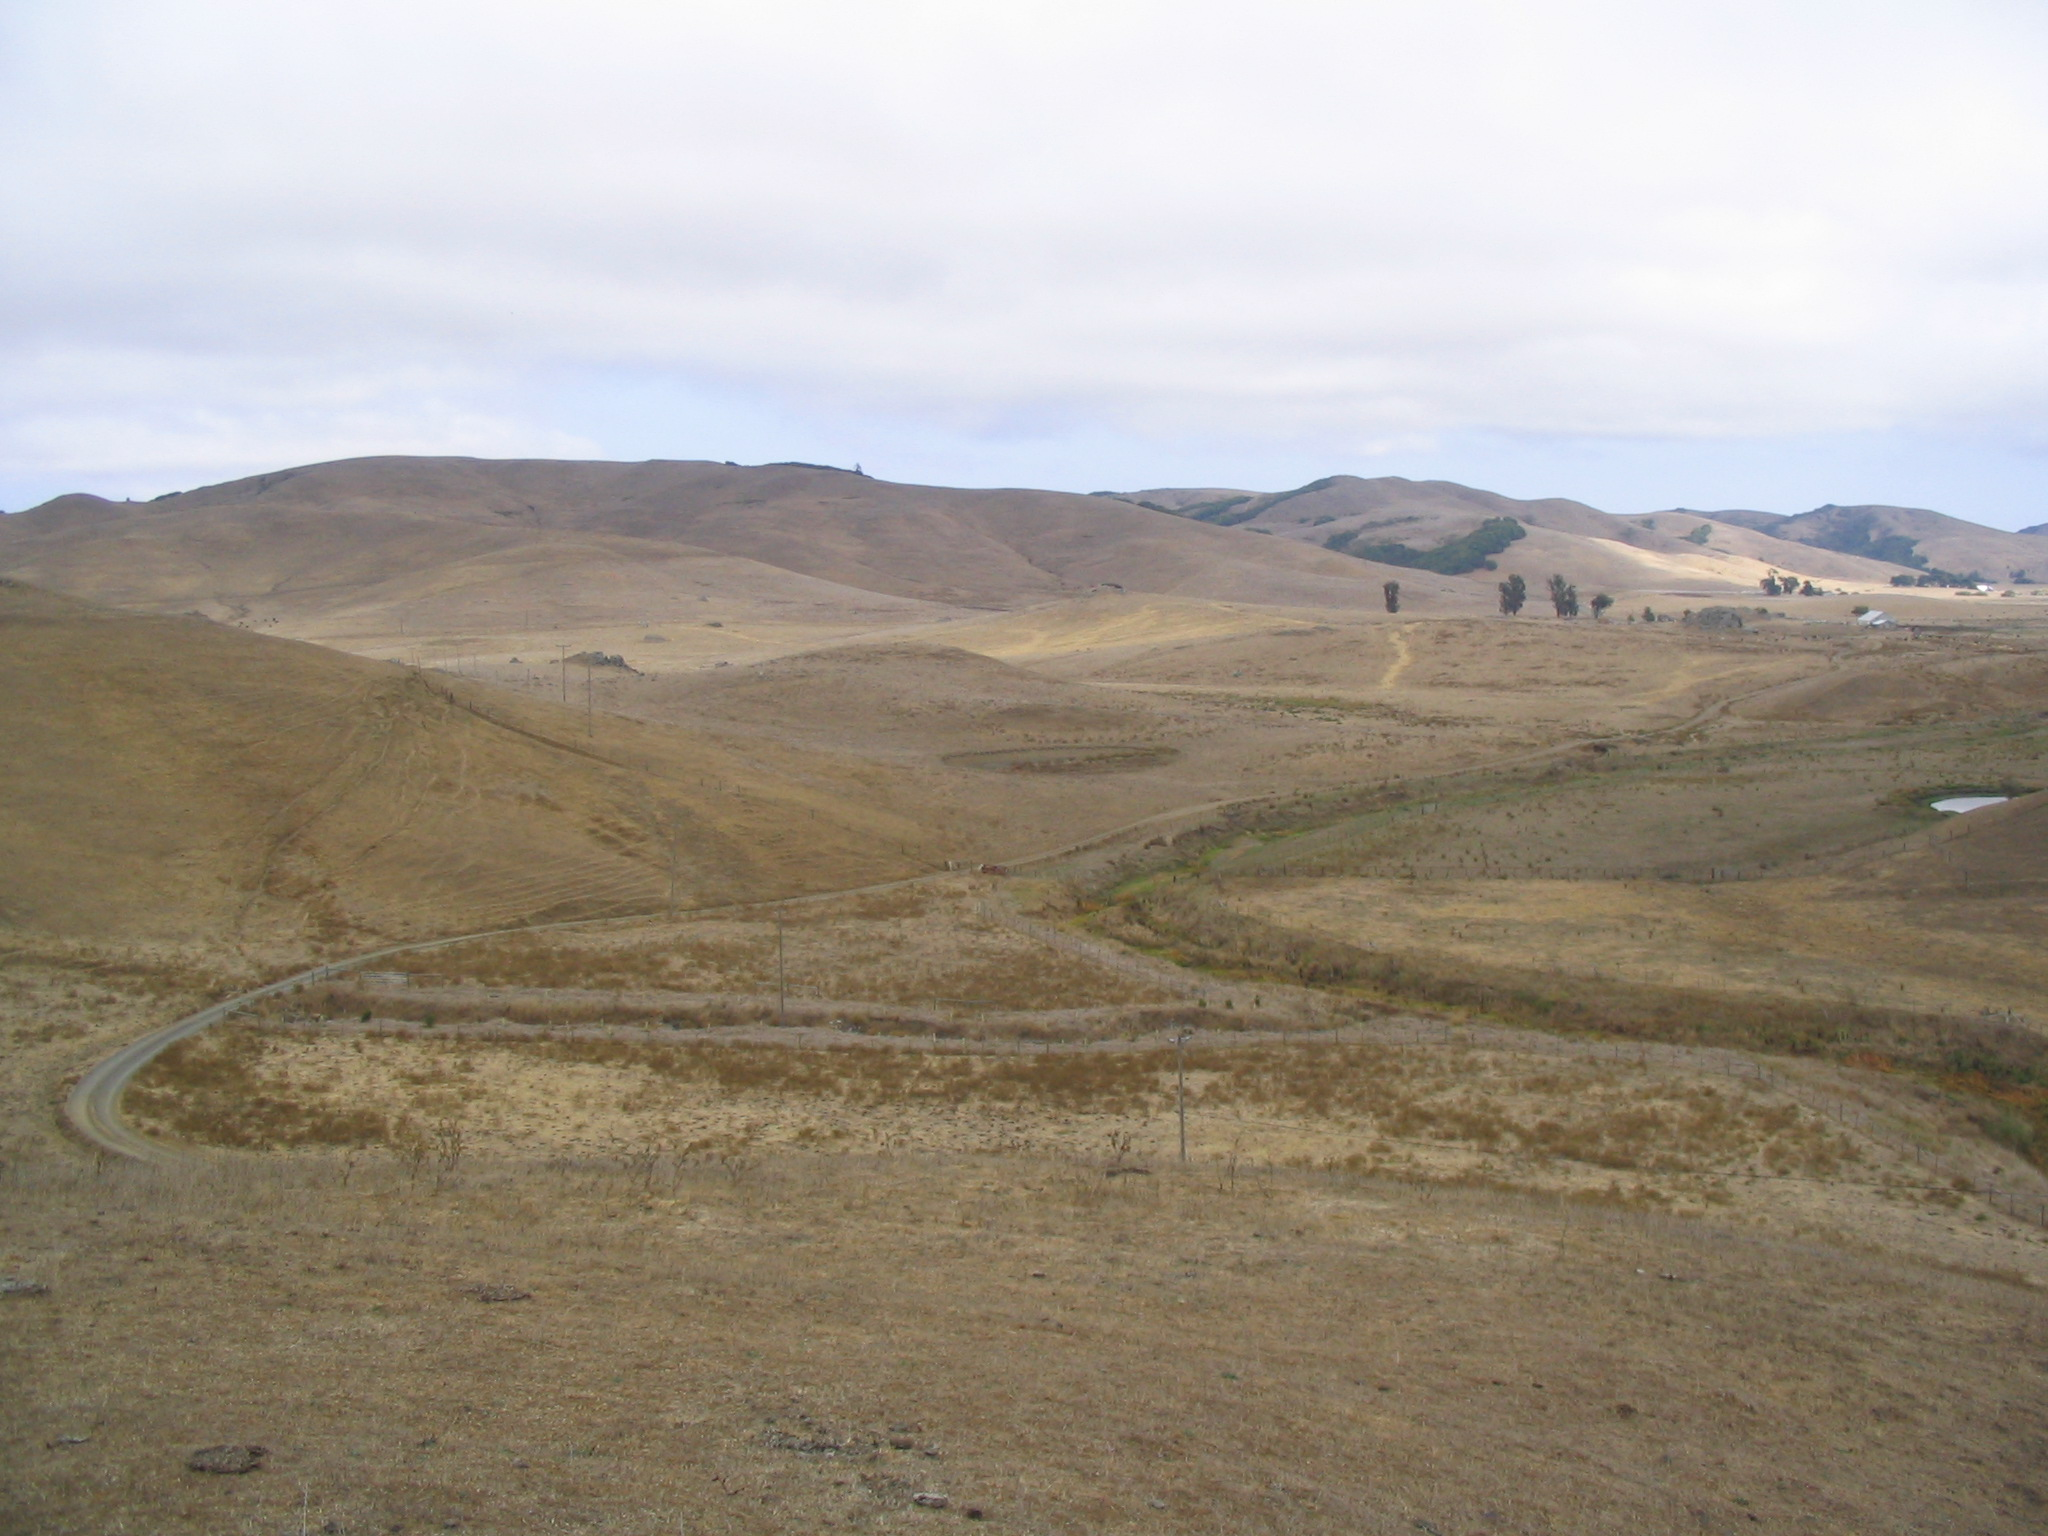 A bright but clouded day in the Marin hills is shown. All the fields and hills are brown (indicating season), with some patches of trees and shrubs. In the foreground, a flat part of the landscape shows a road curving around what seems like a dried-up stream. No large plants grow by the stream.